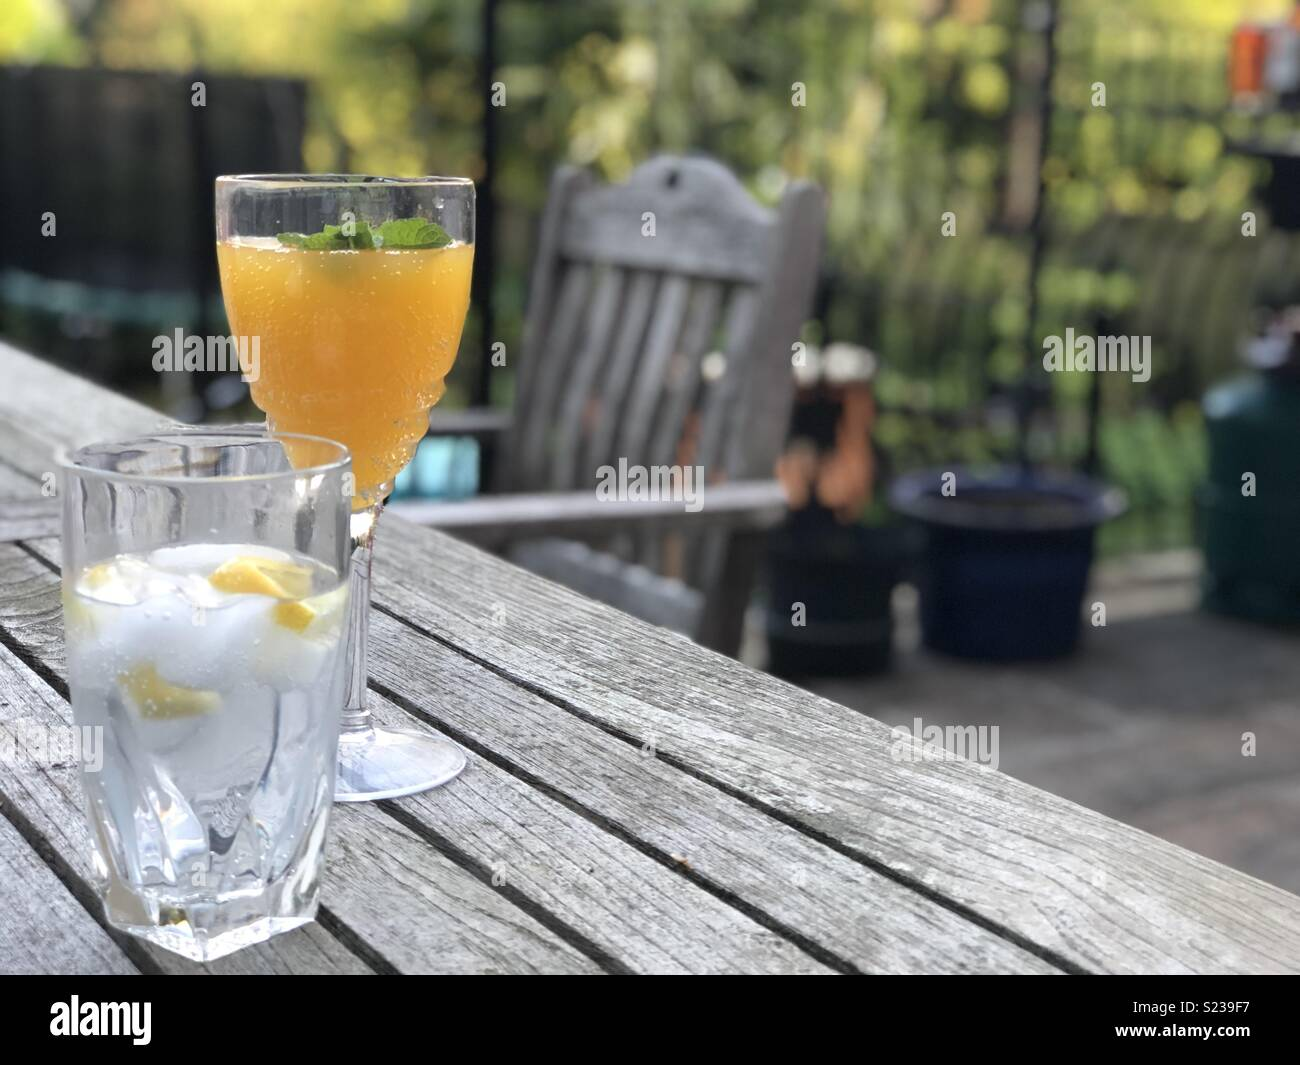 Mum and daughter barbecue drinks on the garden terrace - gin and tonic and a mango and mint fizz. - Stock Image